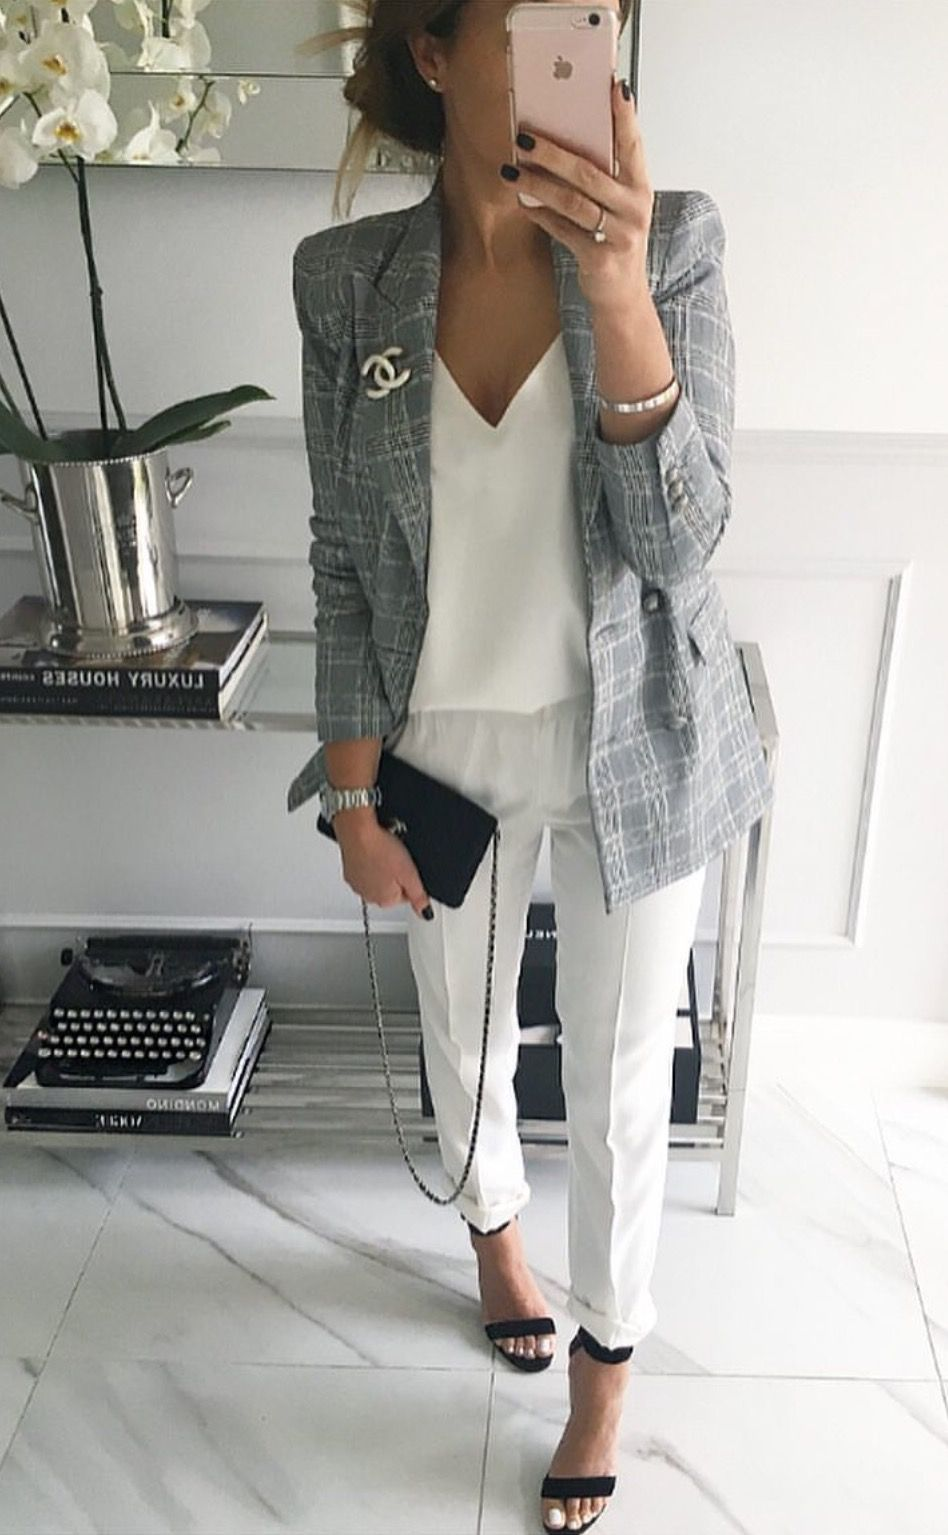 Pin Von Aylin Anselm Auf Fashion In 2018 Pinterest Outfits